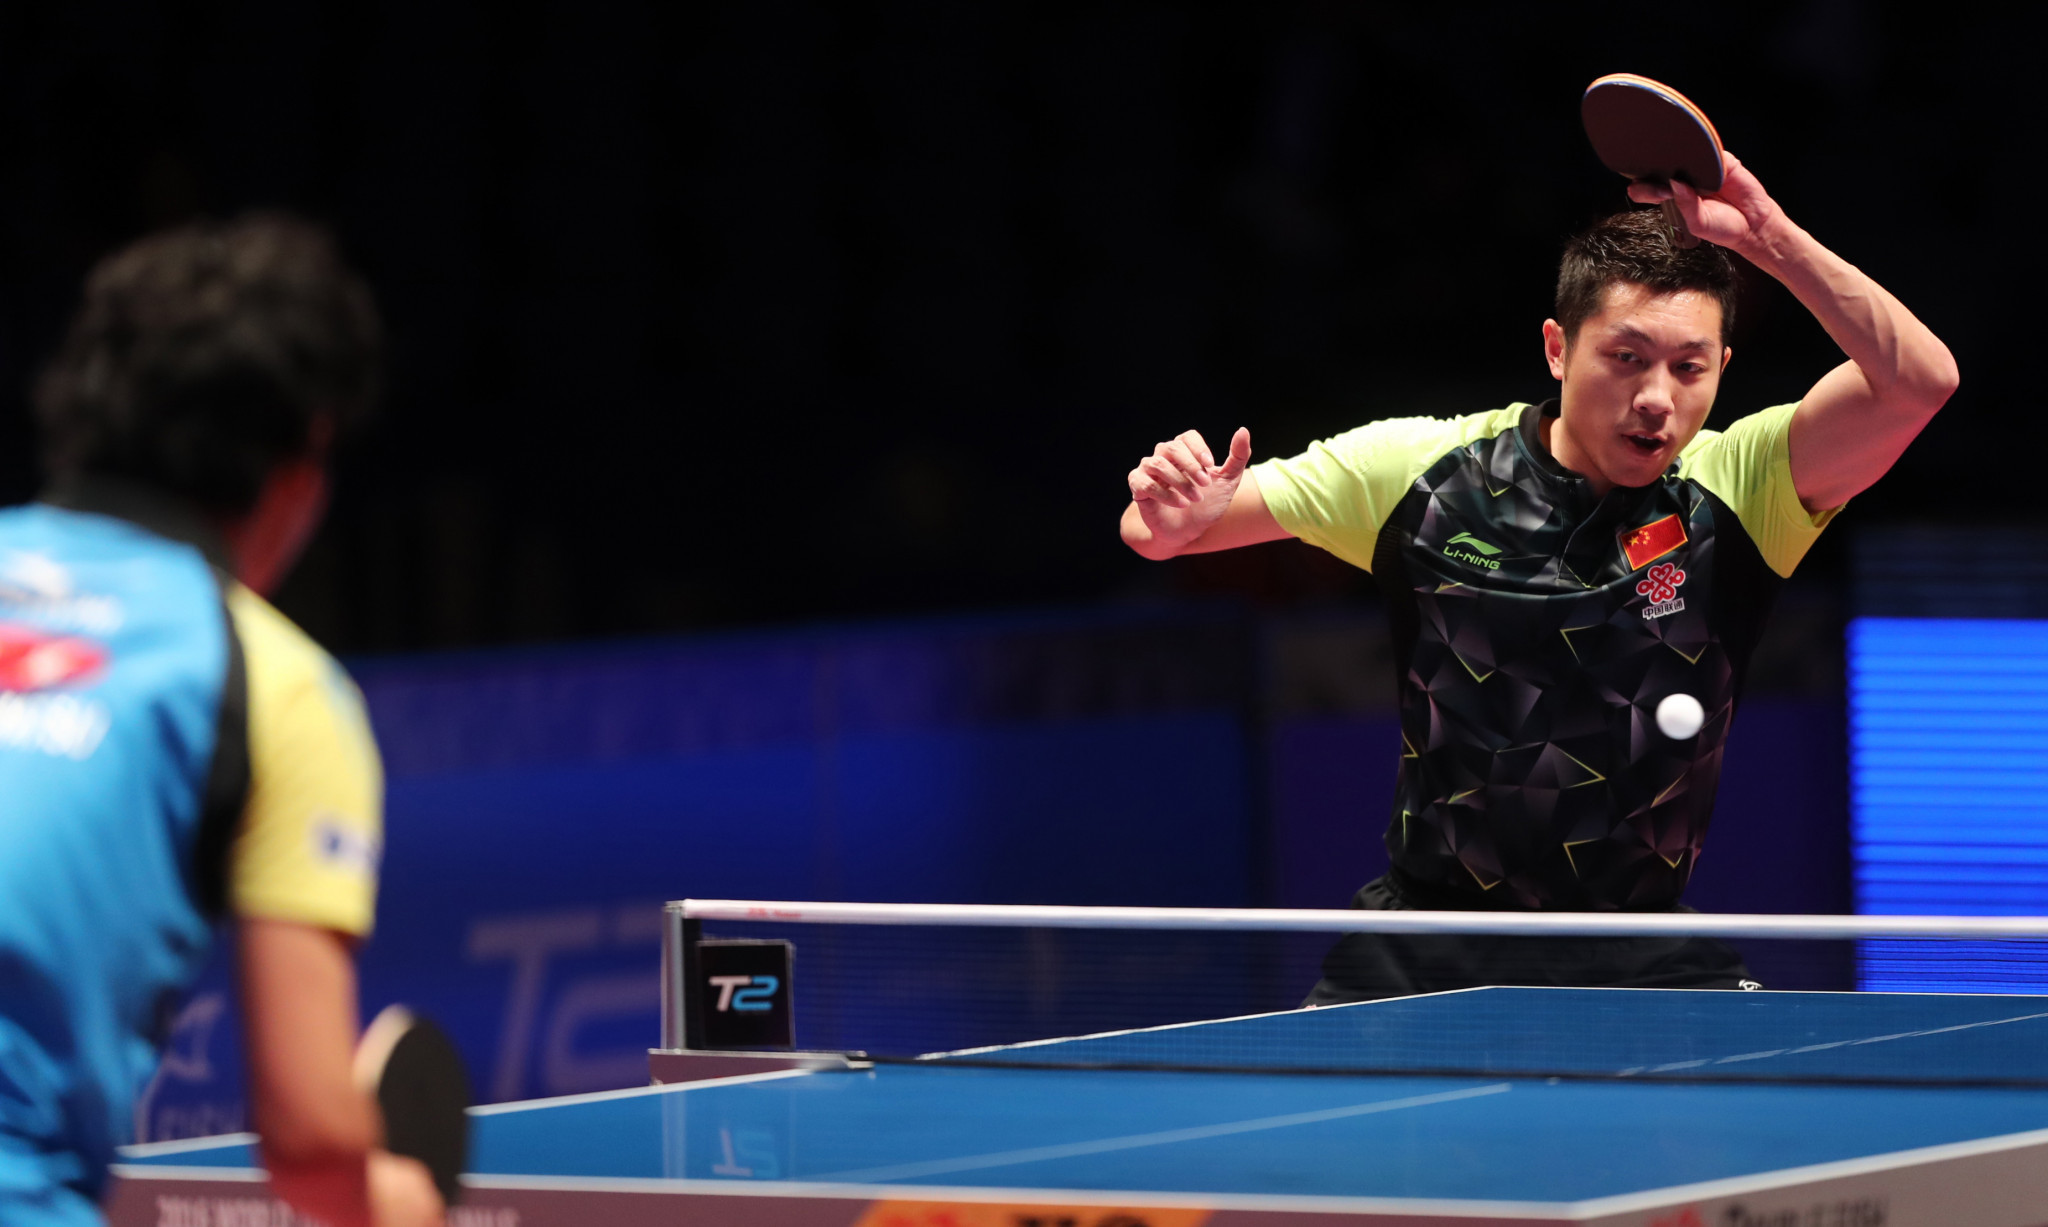 The ITTF and Eurosport have continued their partnership ©Getty Images